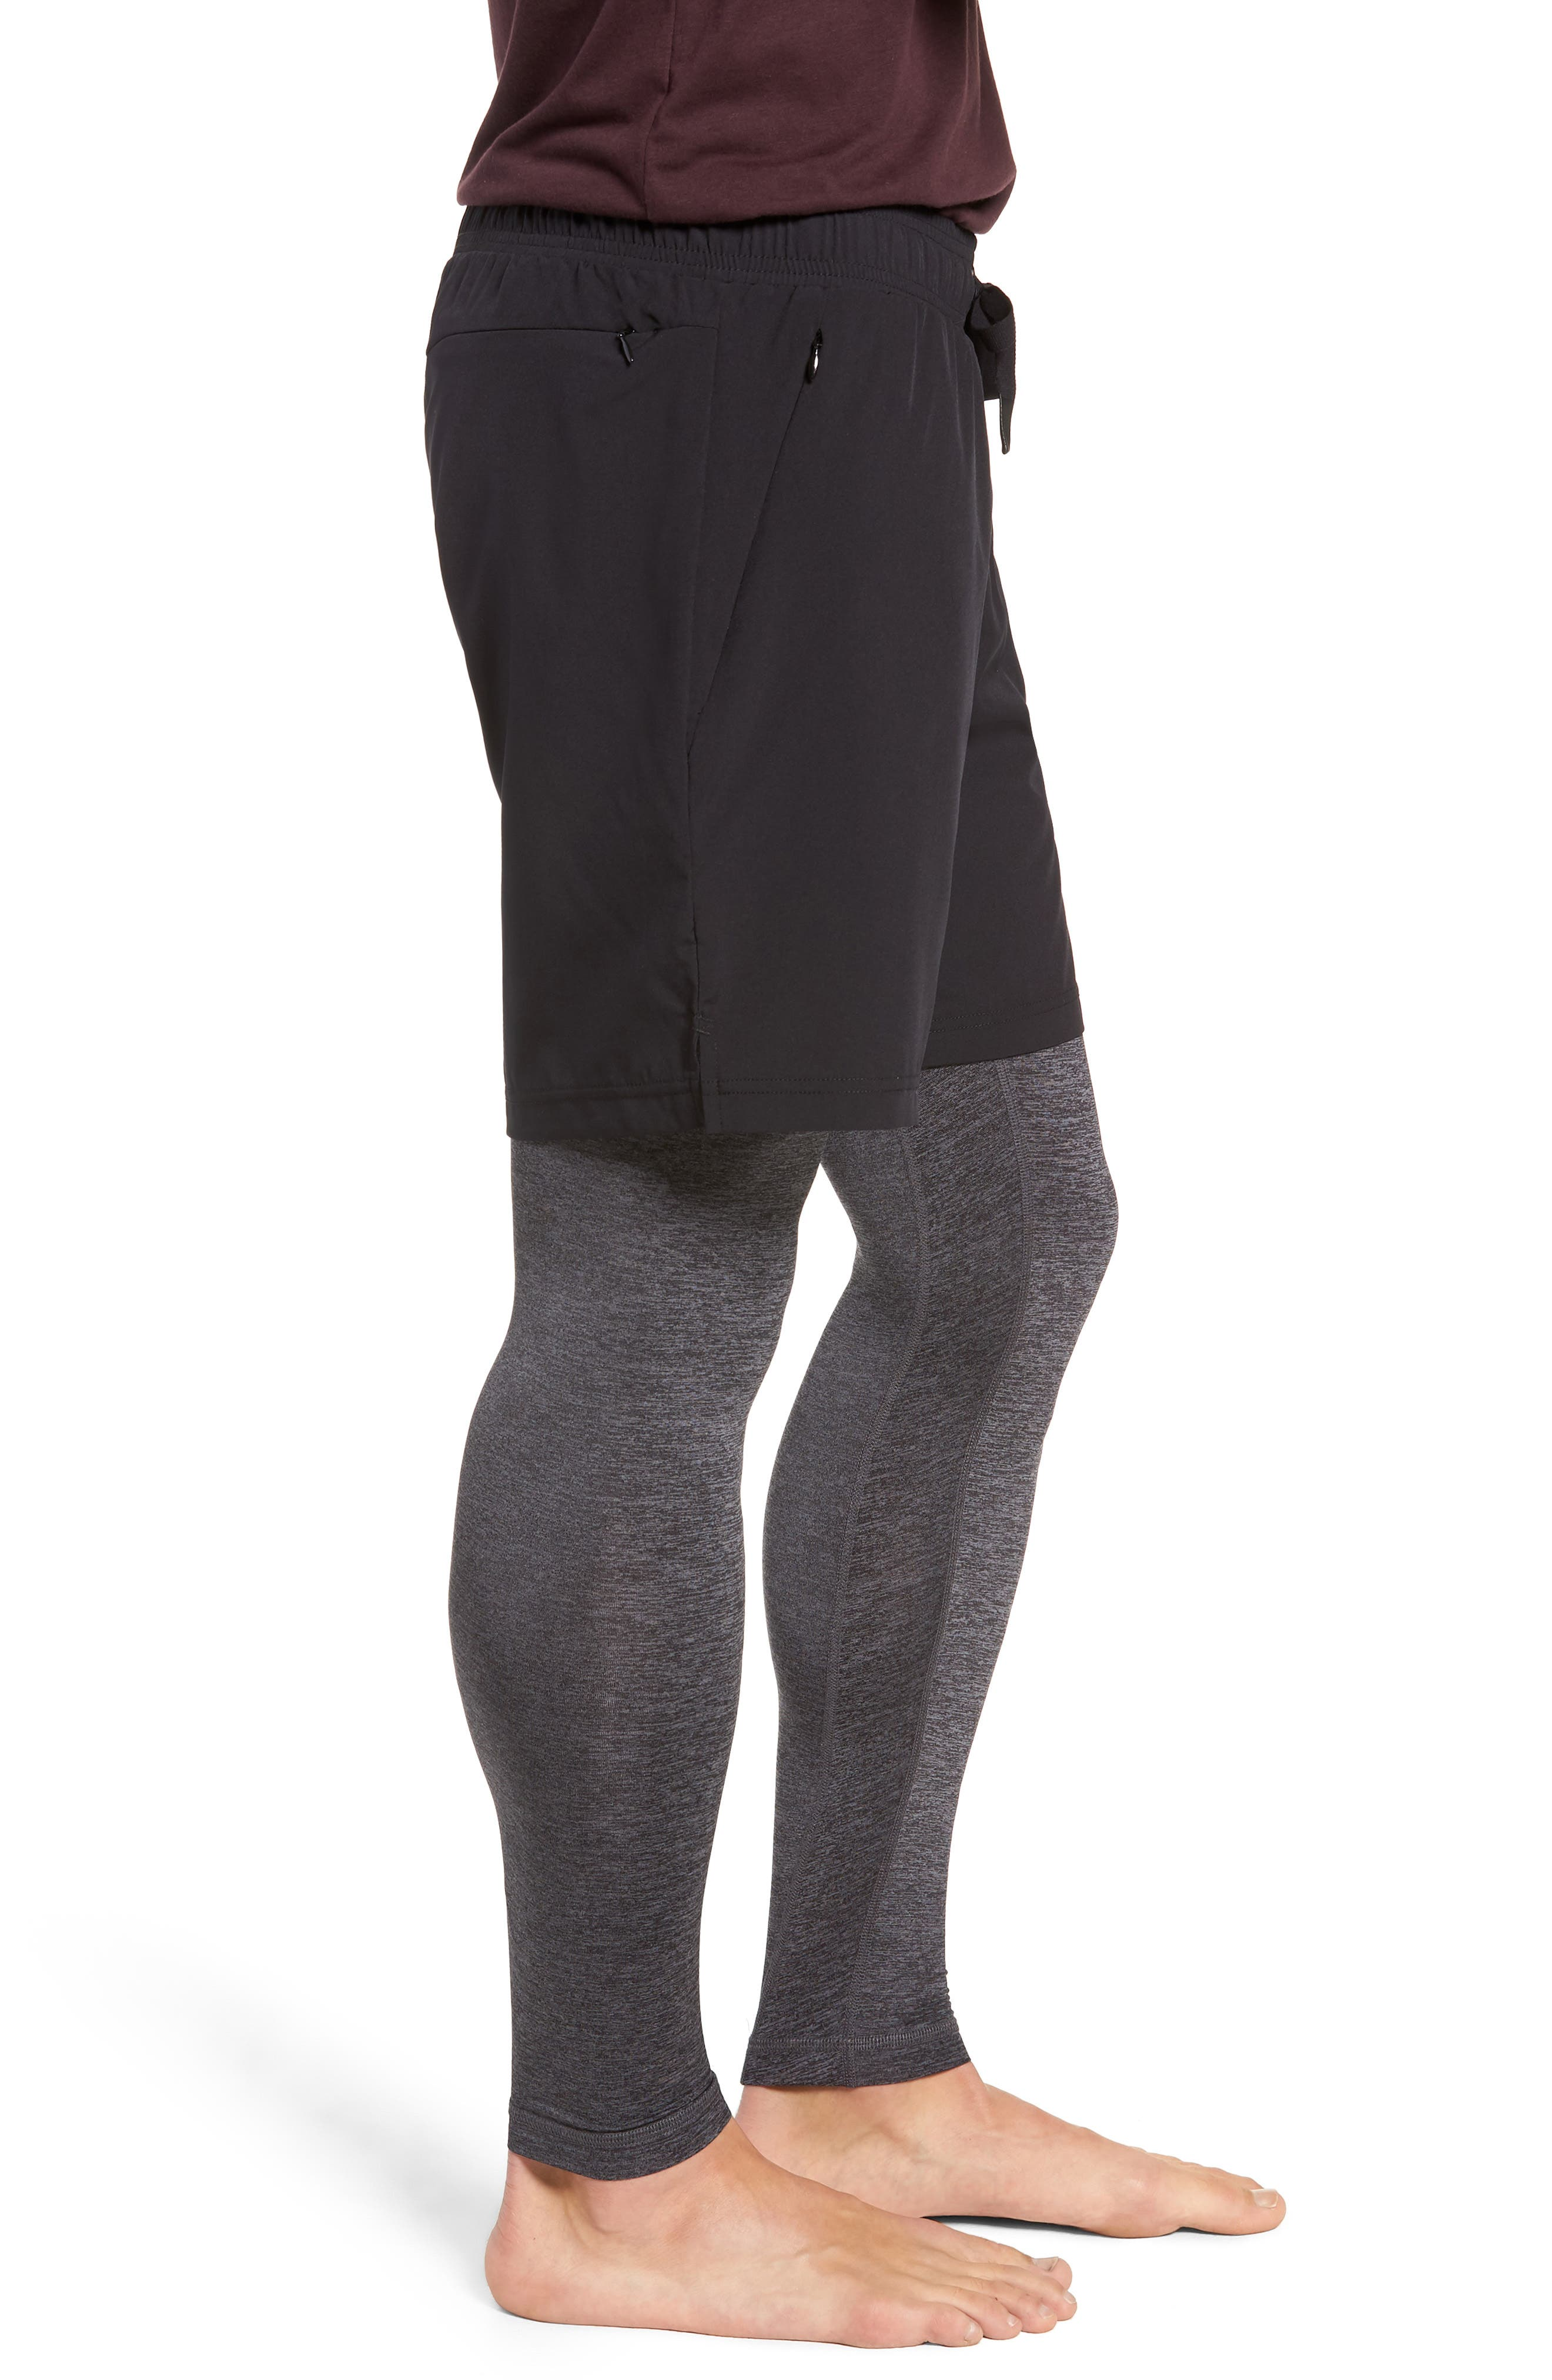 Stability 2-in-1 Athletic Tights,                             Alternate thumbnail 3, color,                             BLACK/ DARK GREY MARL